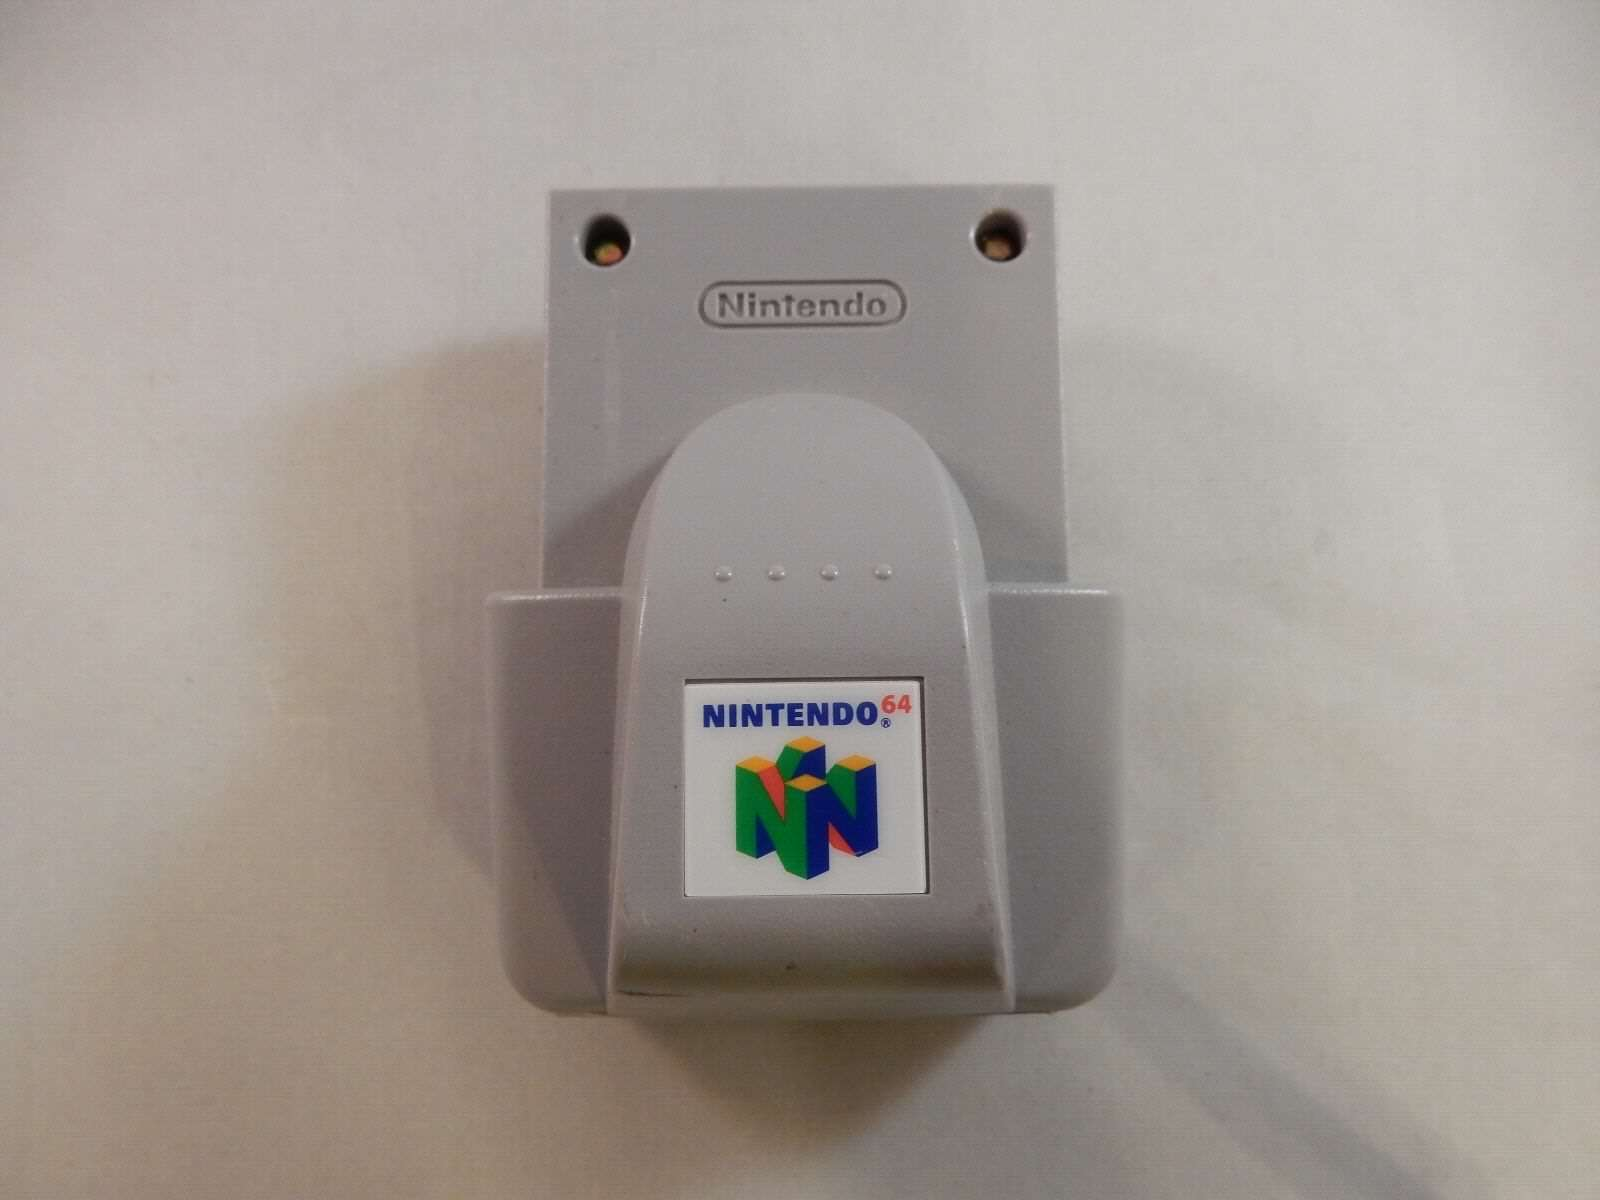 Five Reasons The N64 Was Awesome official genuine oem nintendo 64 n64 rumble pak nus 013 tested a238 e1277402706cef45d676ca8def9e0fa9